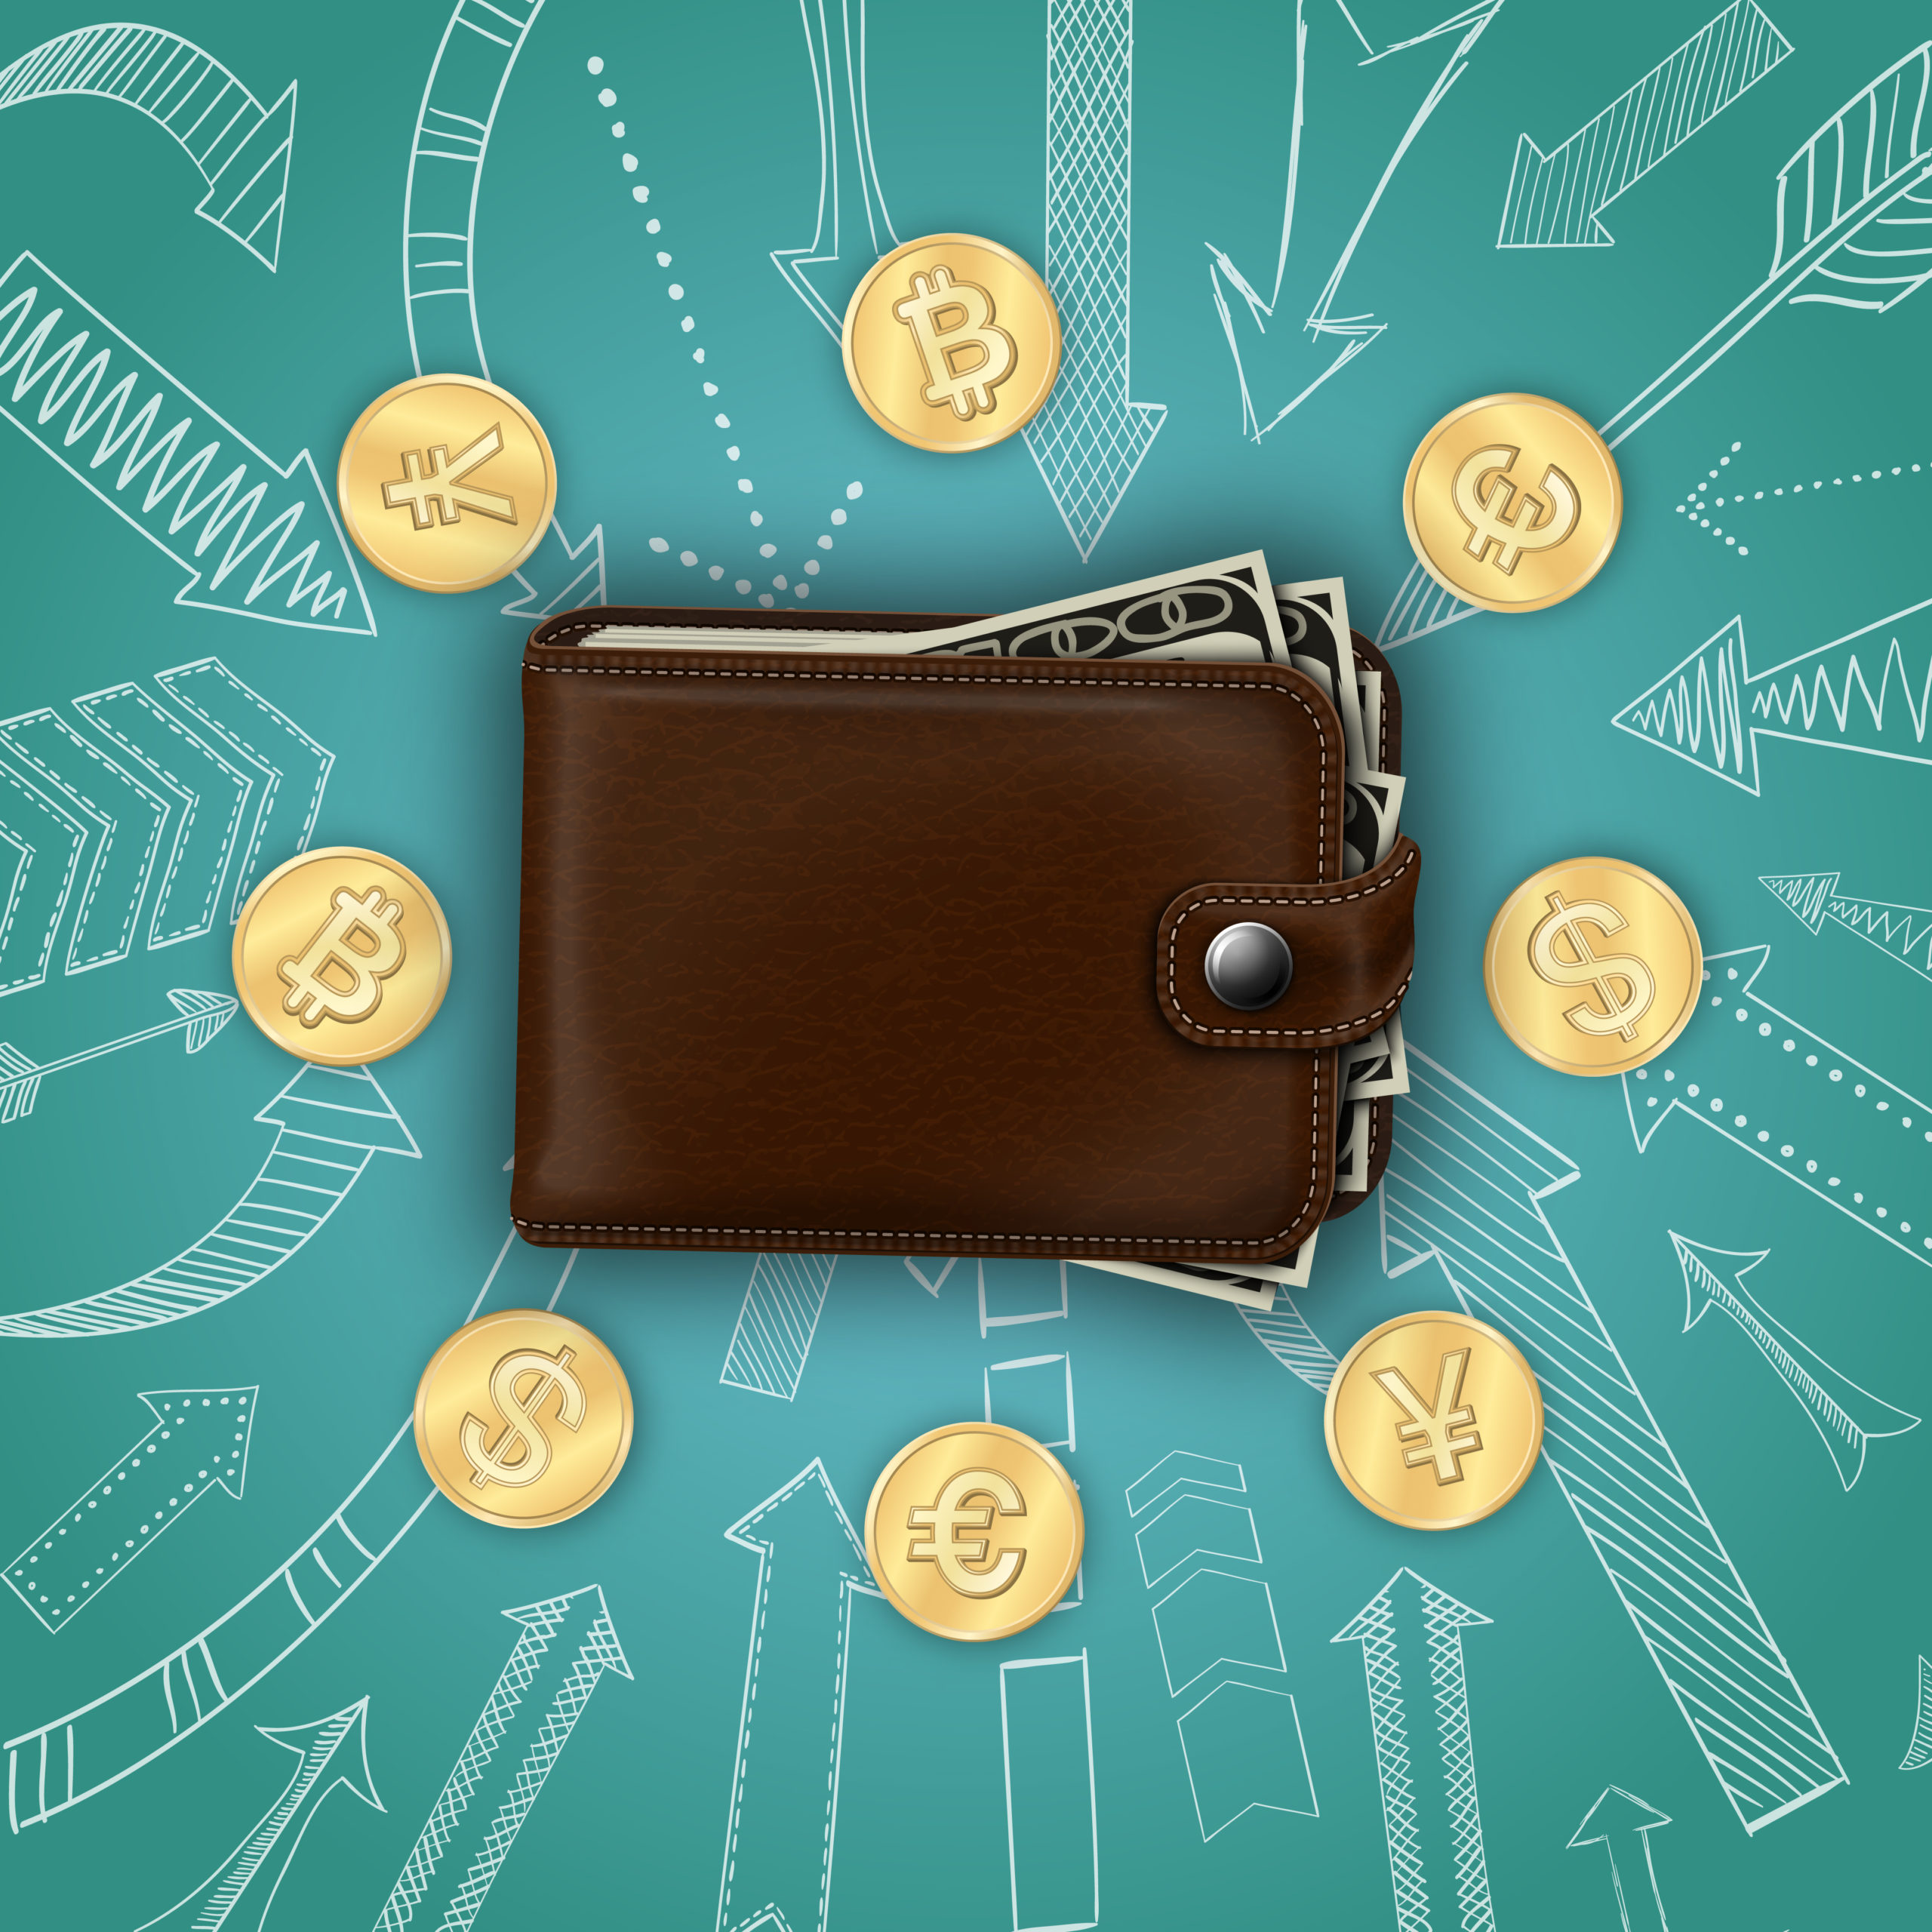 Crypto Wallets are best to secure your coins. So how to choose the best wallet?